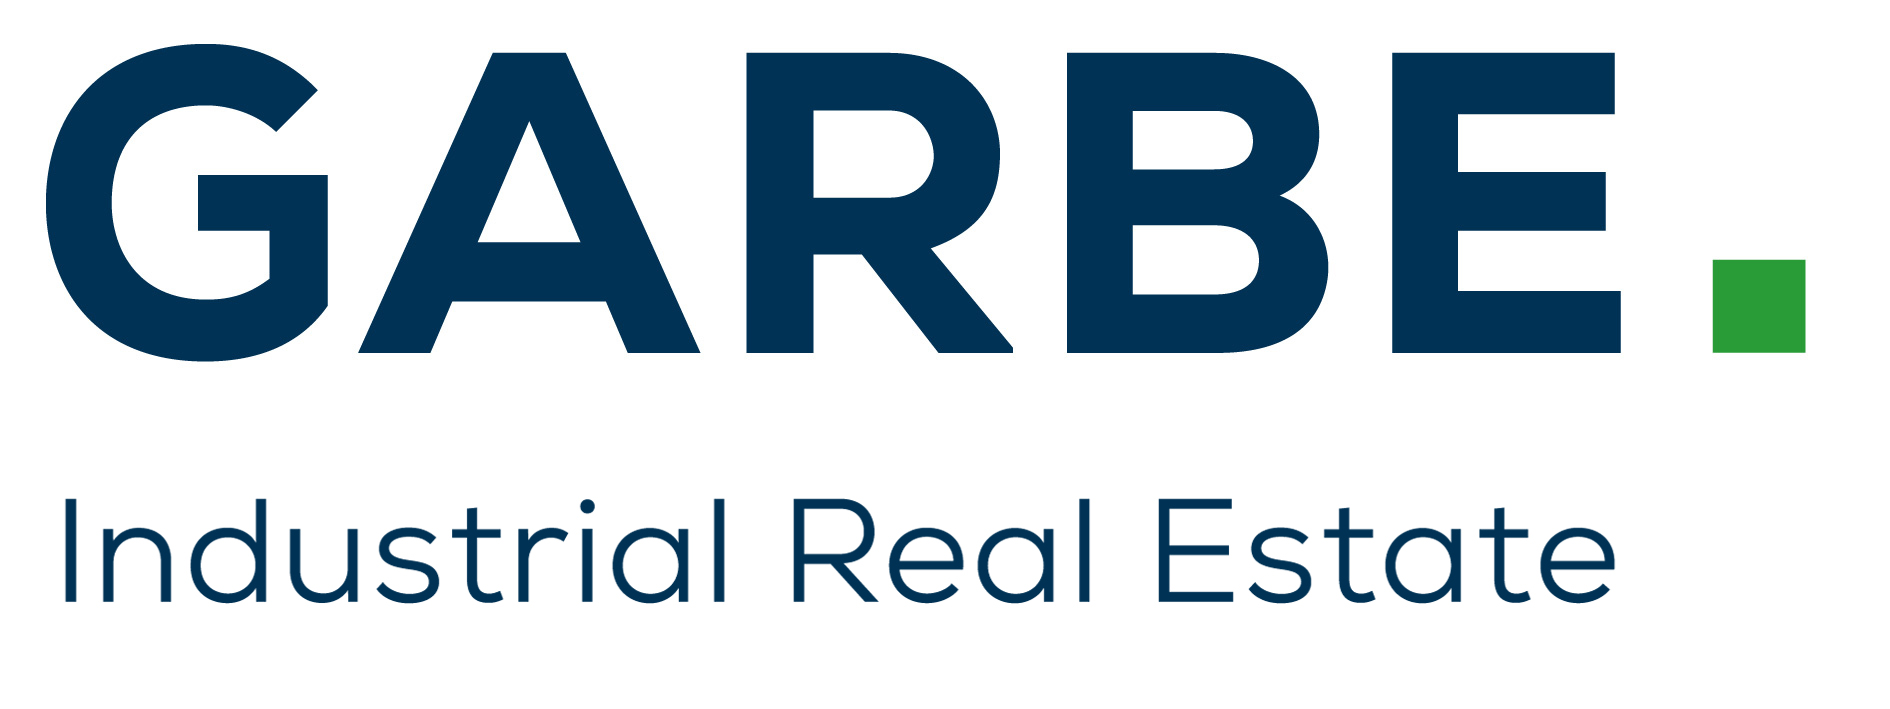 GARBE Industrial Real Estate GmbH